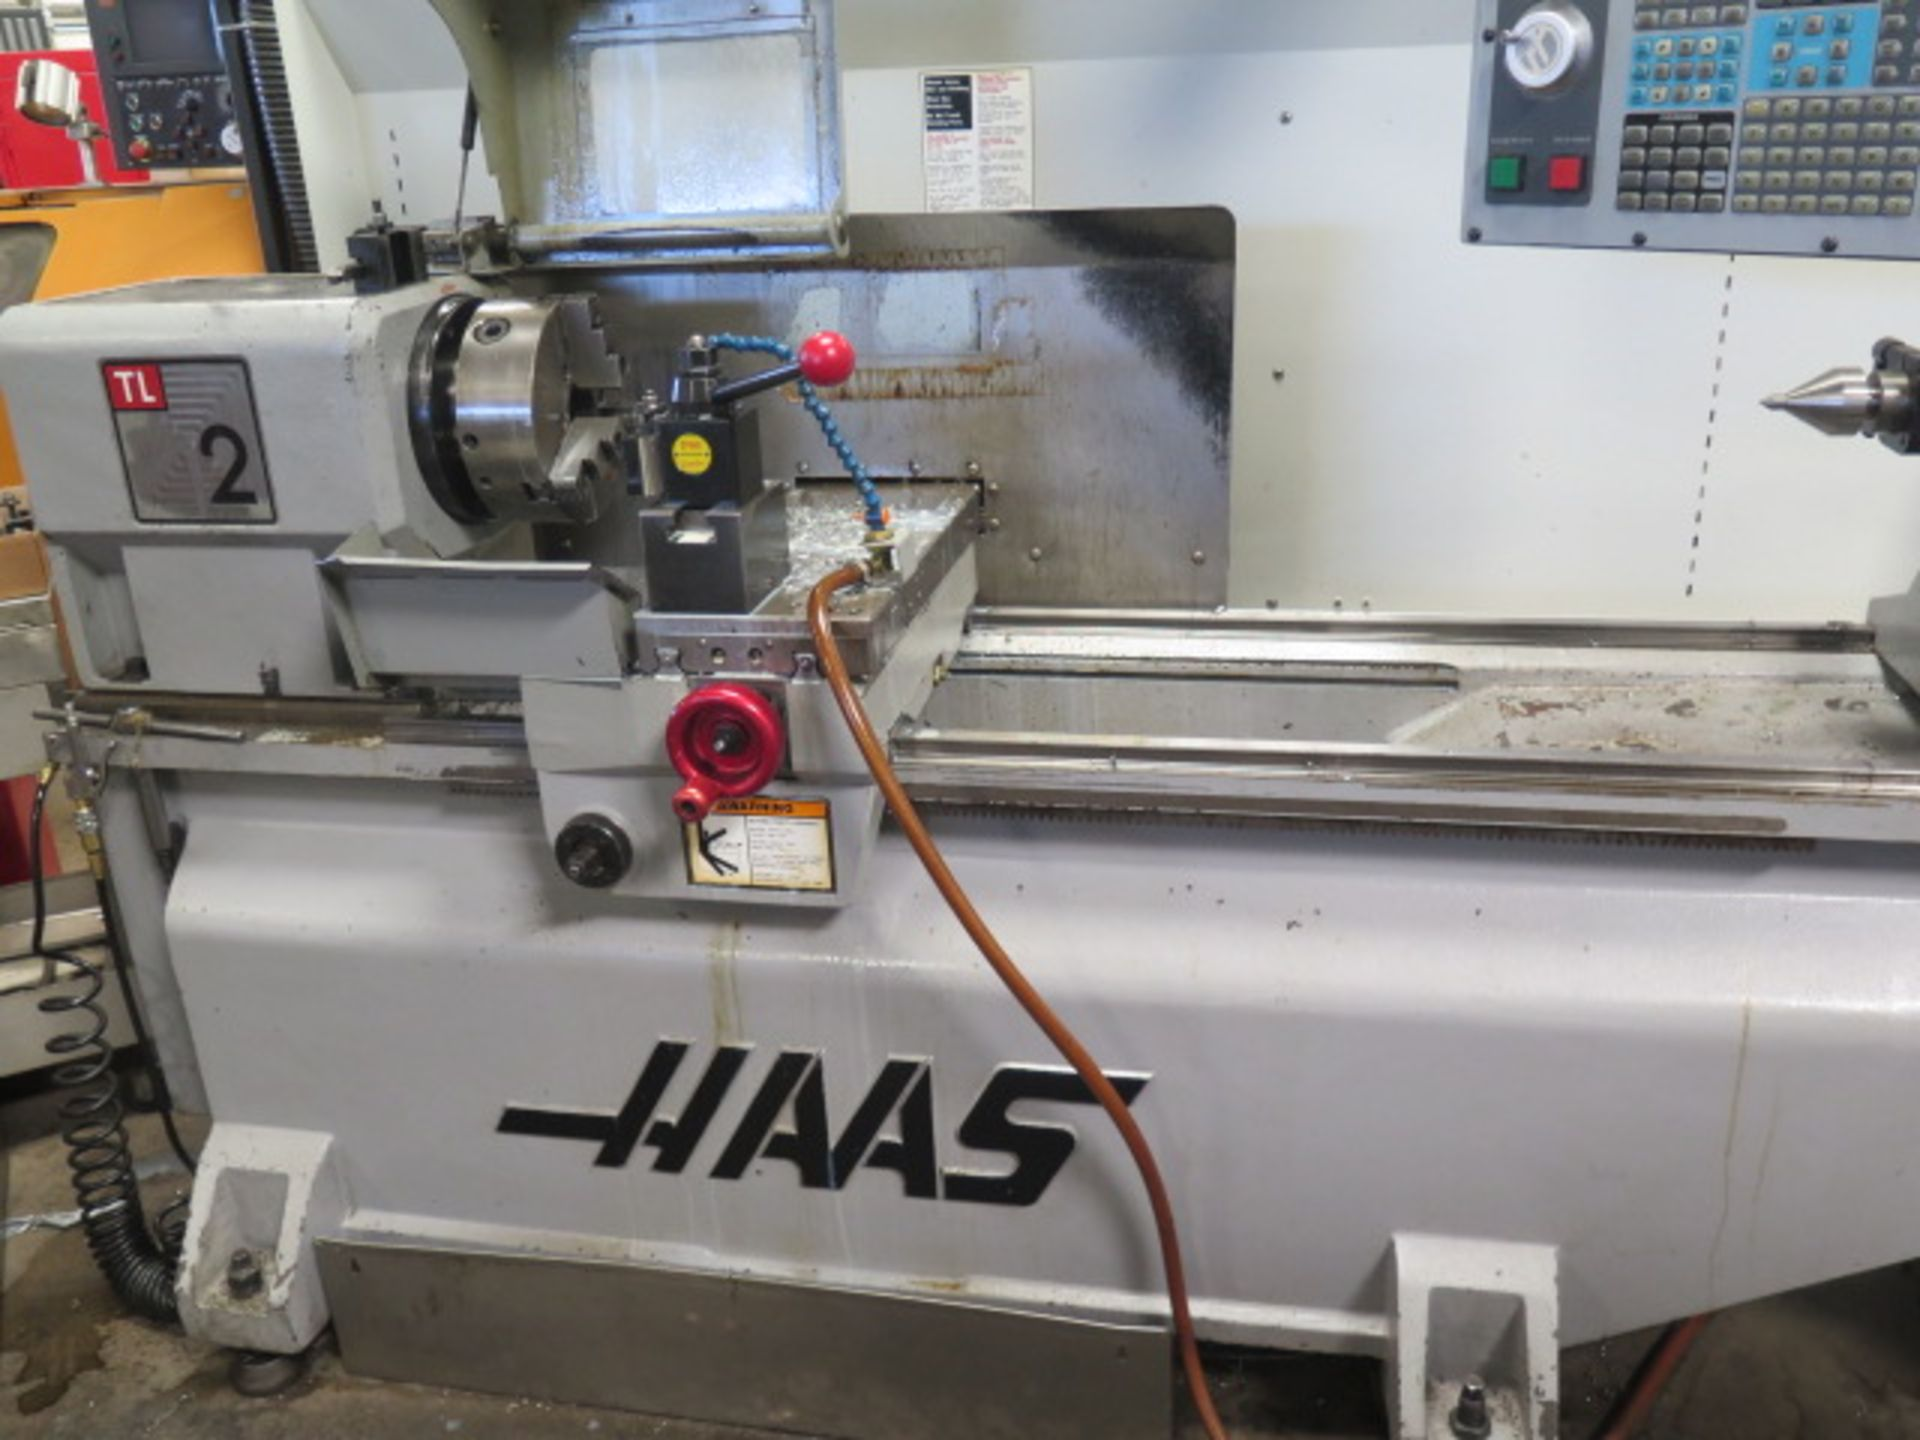 2004 Haas TL2 CNC Tool Room Lathe s/n 68351 w/ Haas Controls, Tailstock, Steady Rest, SOLD AS IS - Image 2 of 15